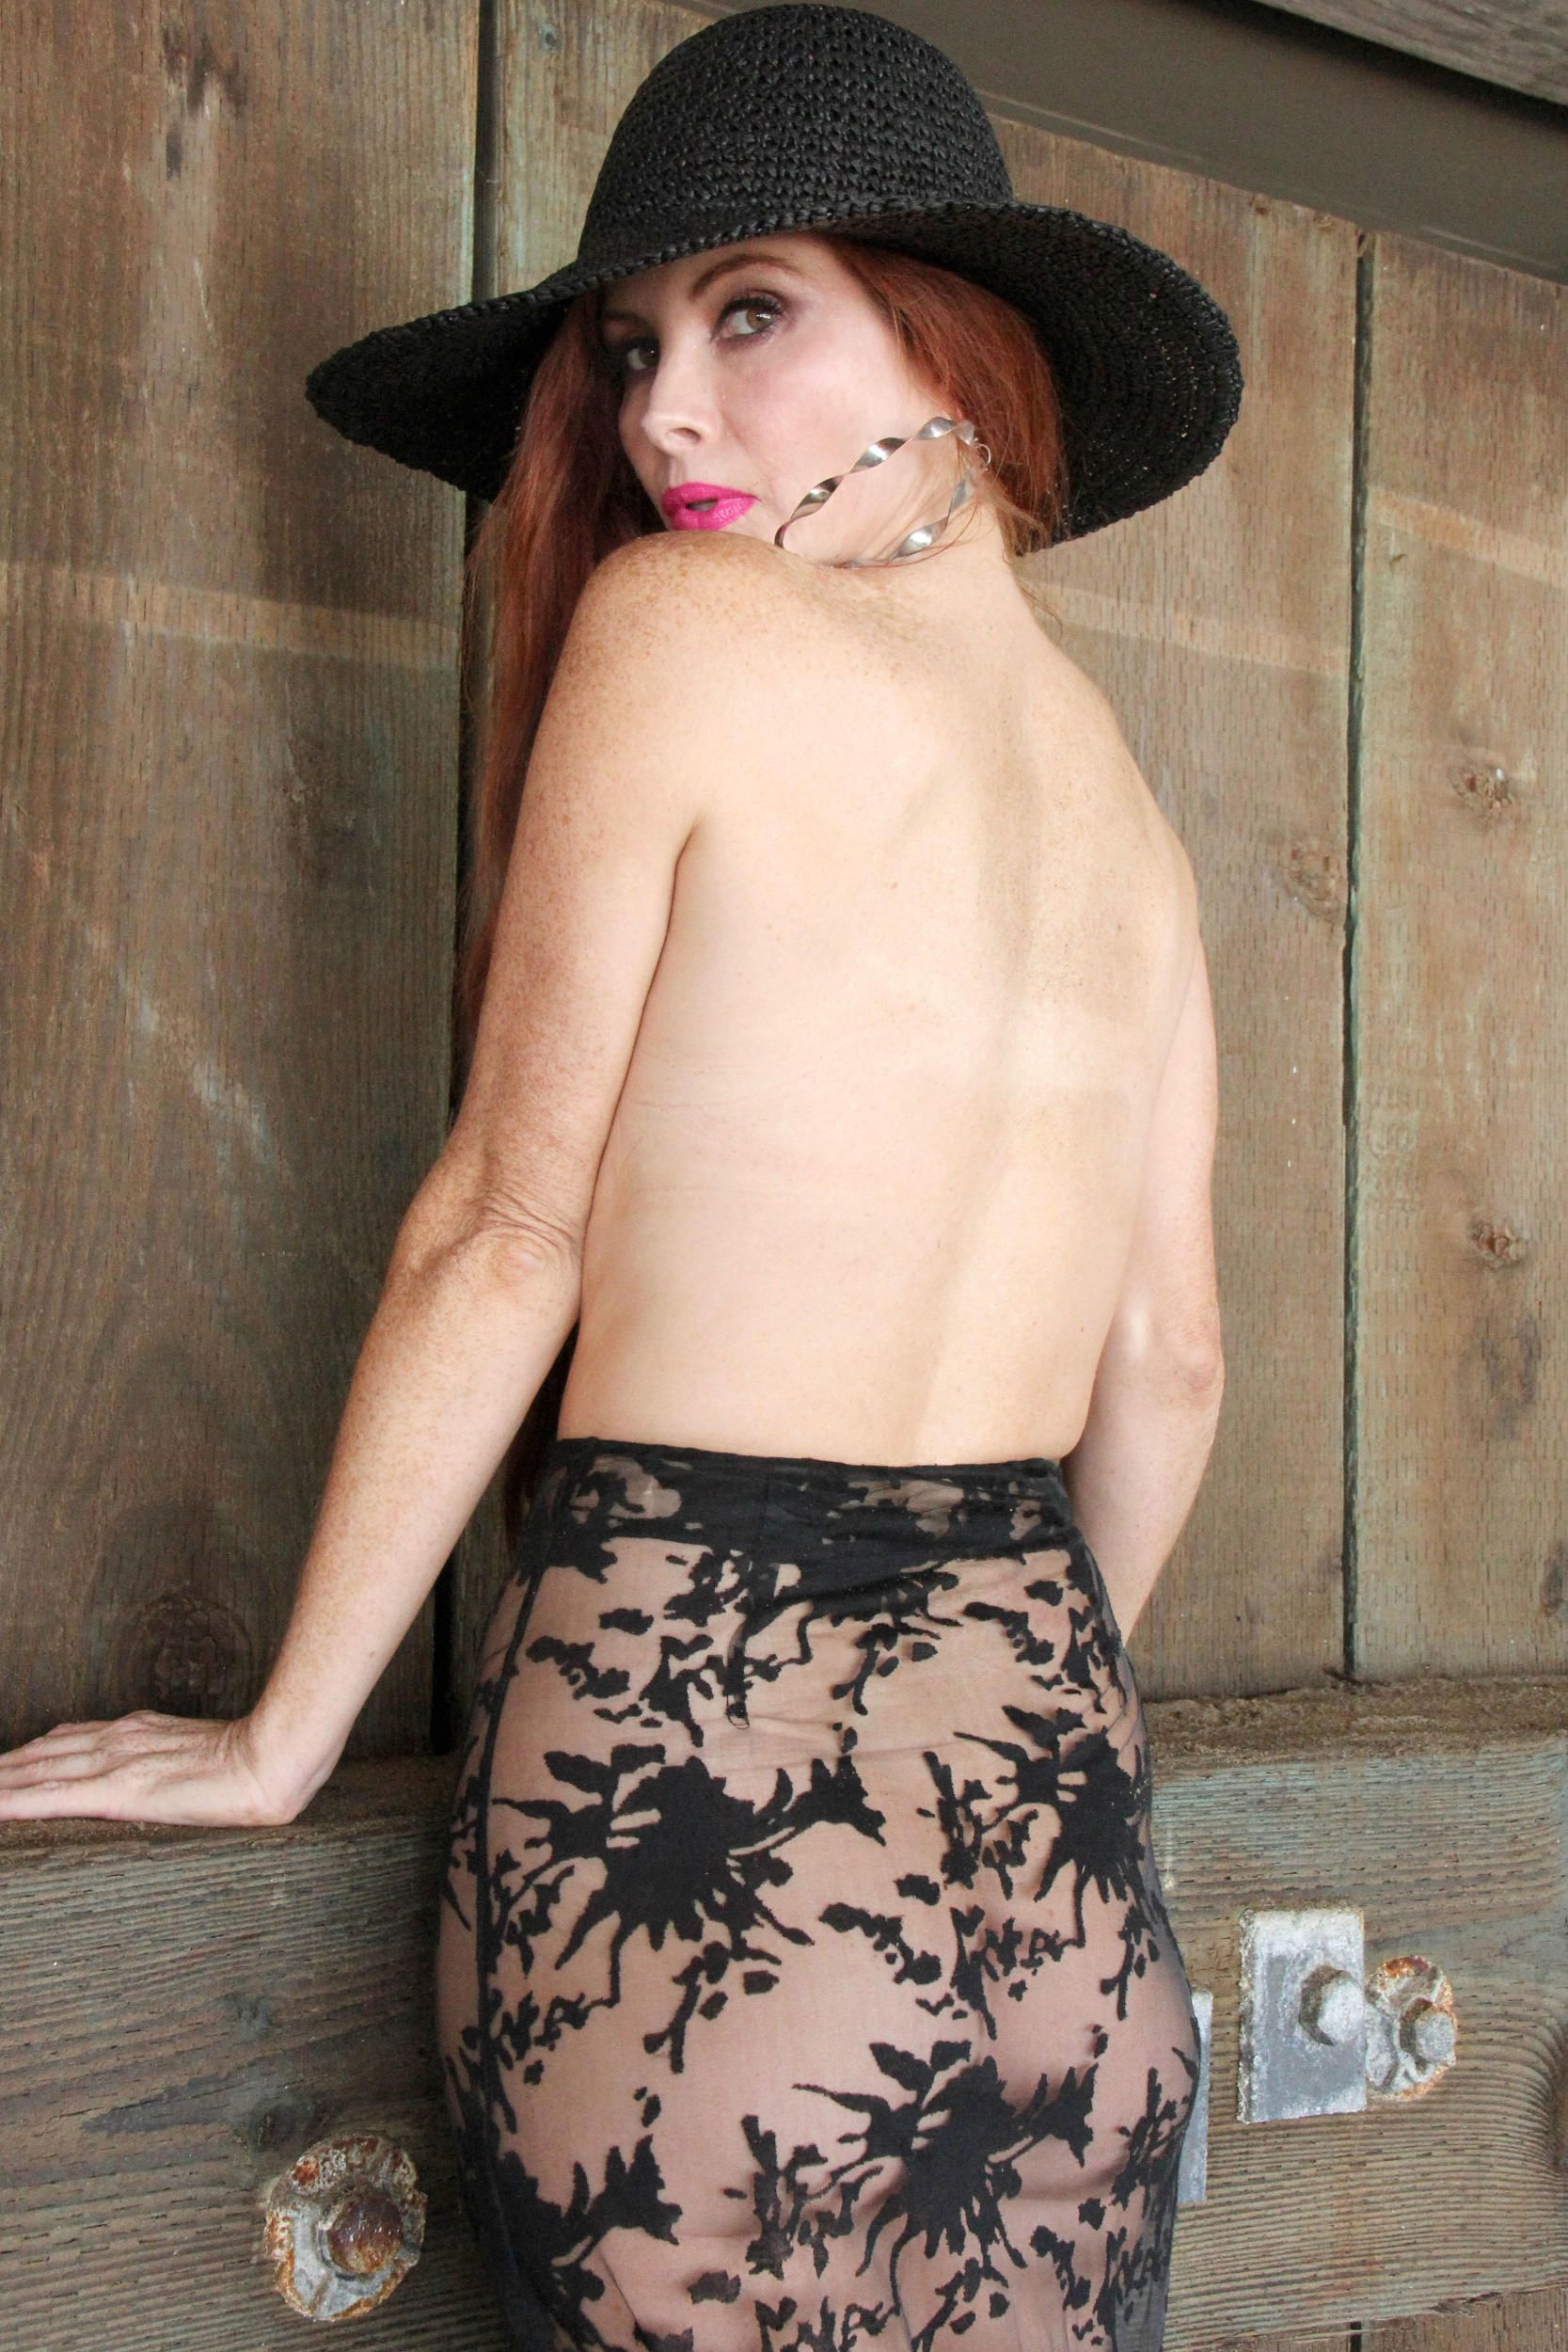 Phoebe Price Topless 8 TheFappening.nu